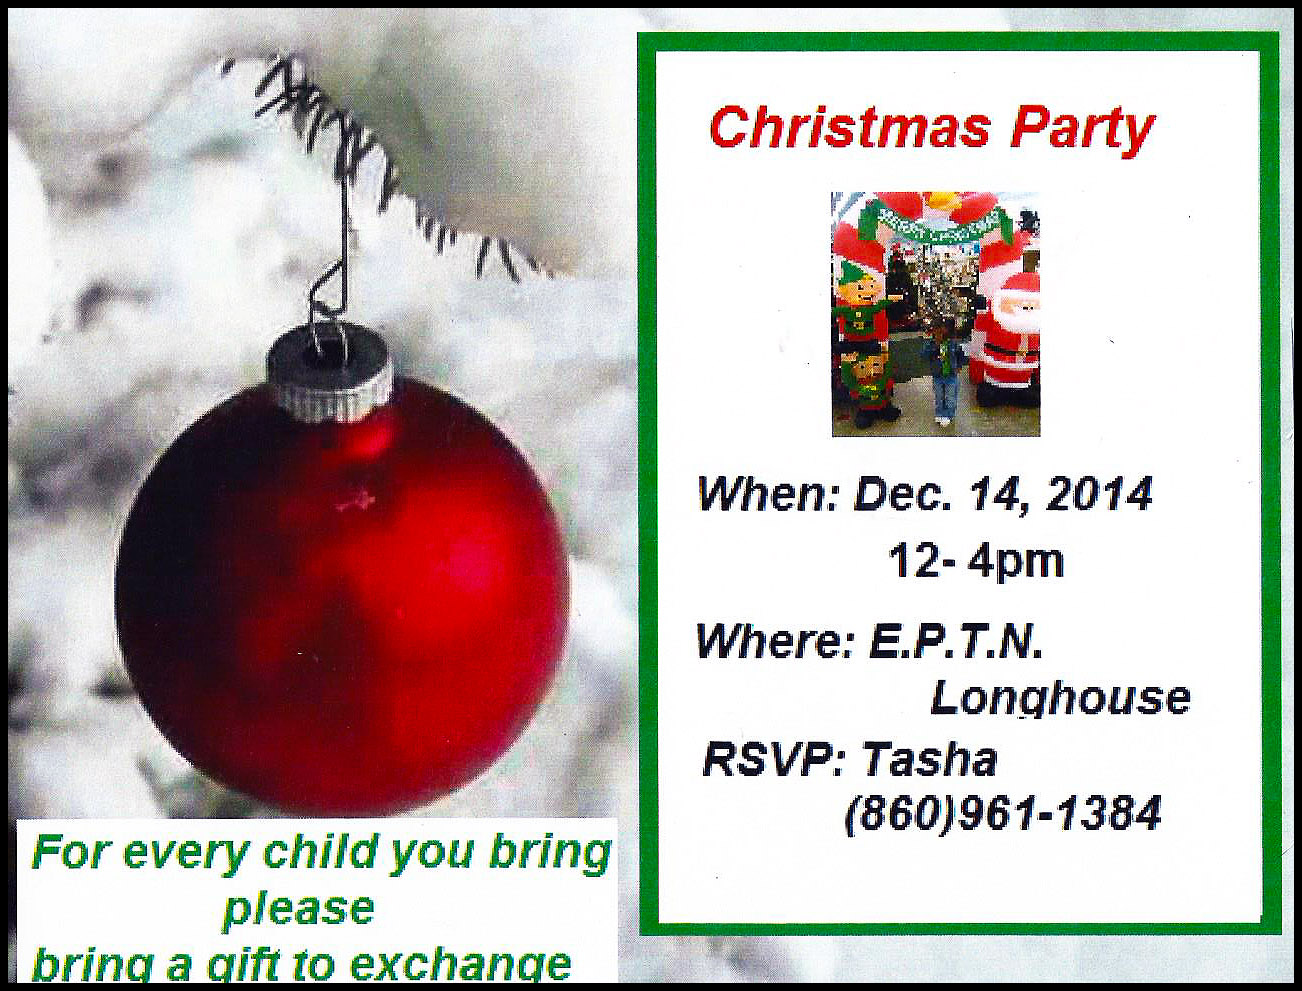 EPTN Holiday Party